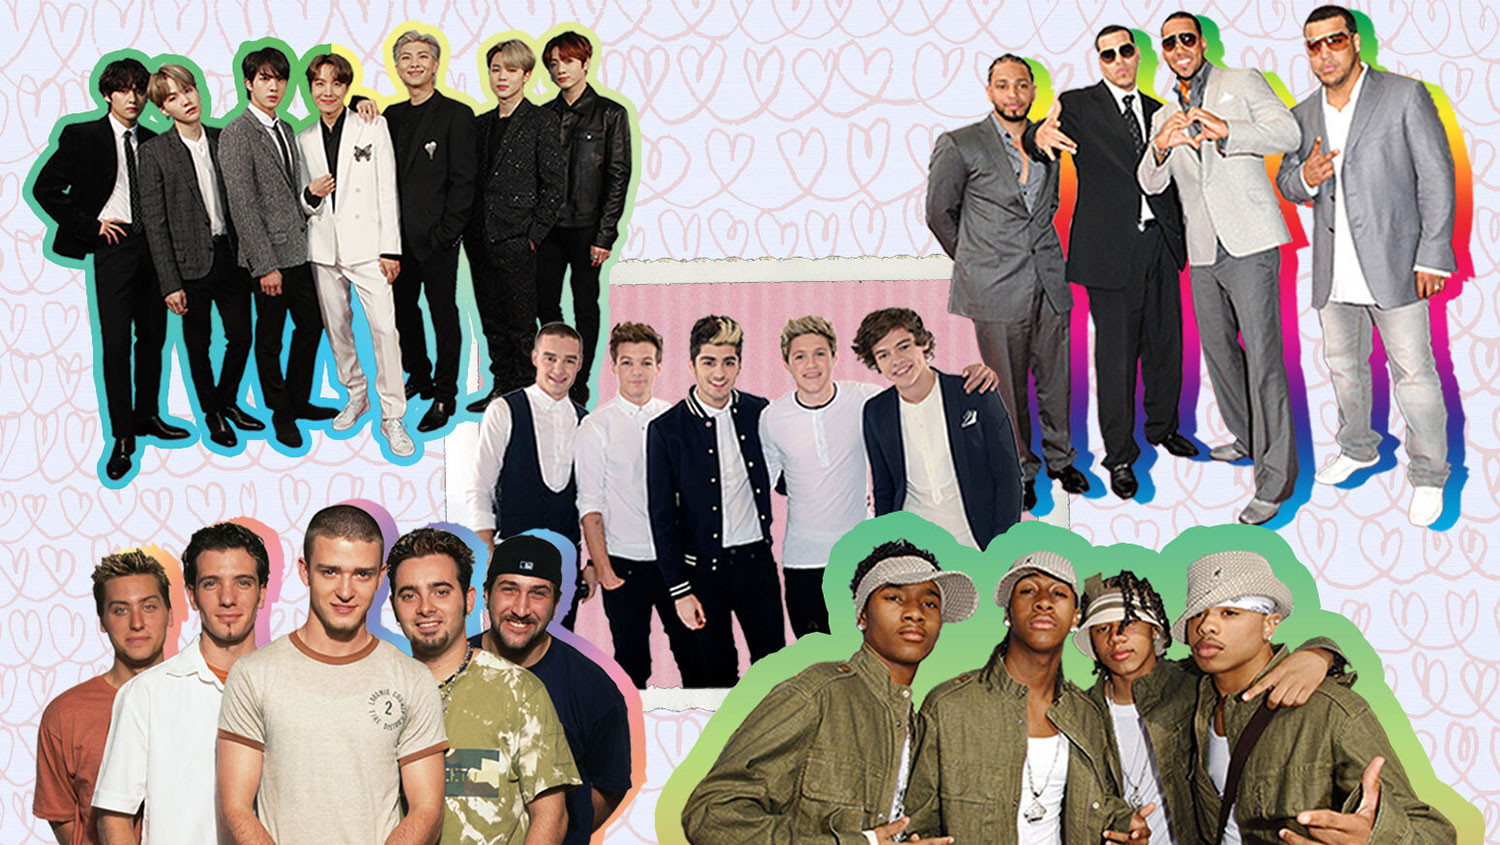 The 30 Best Boy Band Albums of the Past 30 Years: Staff Picks